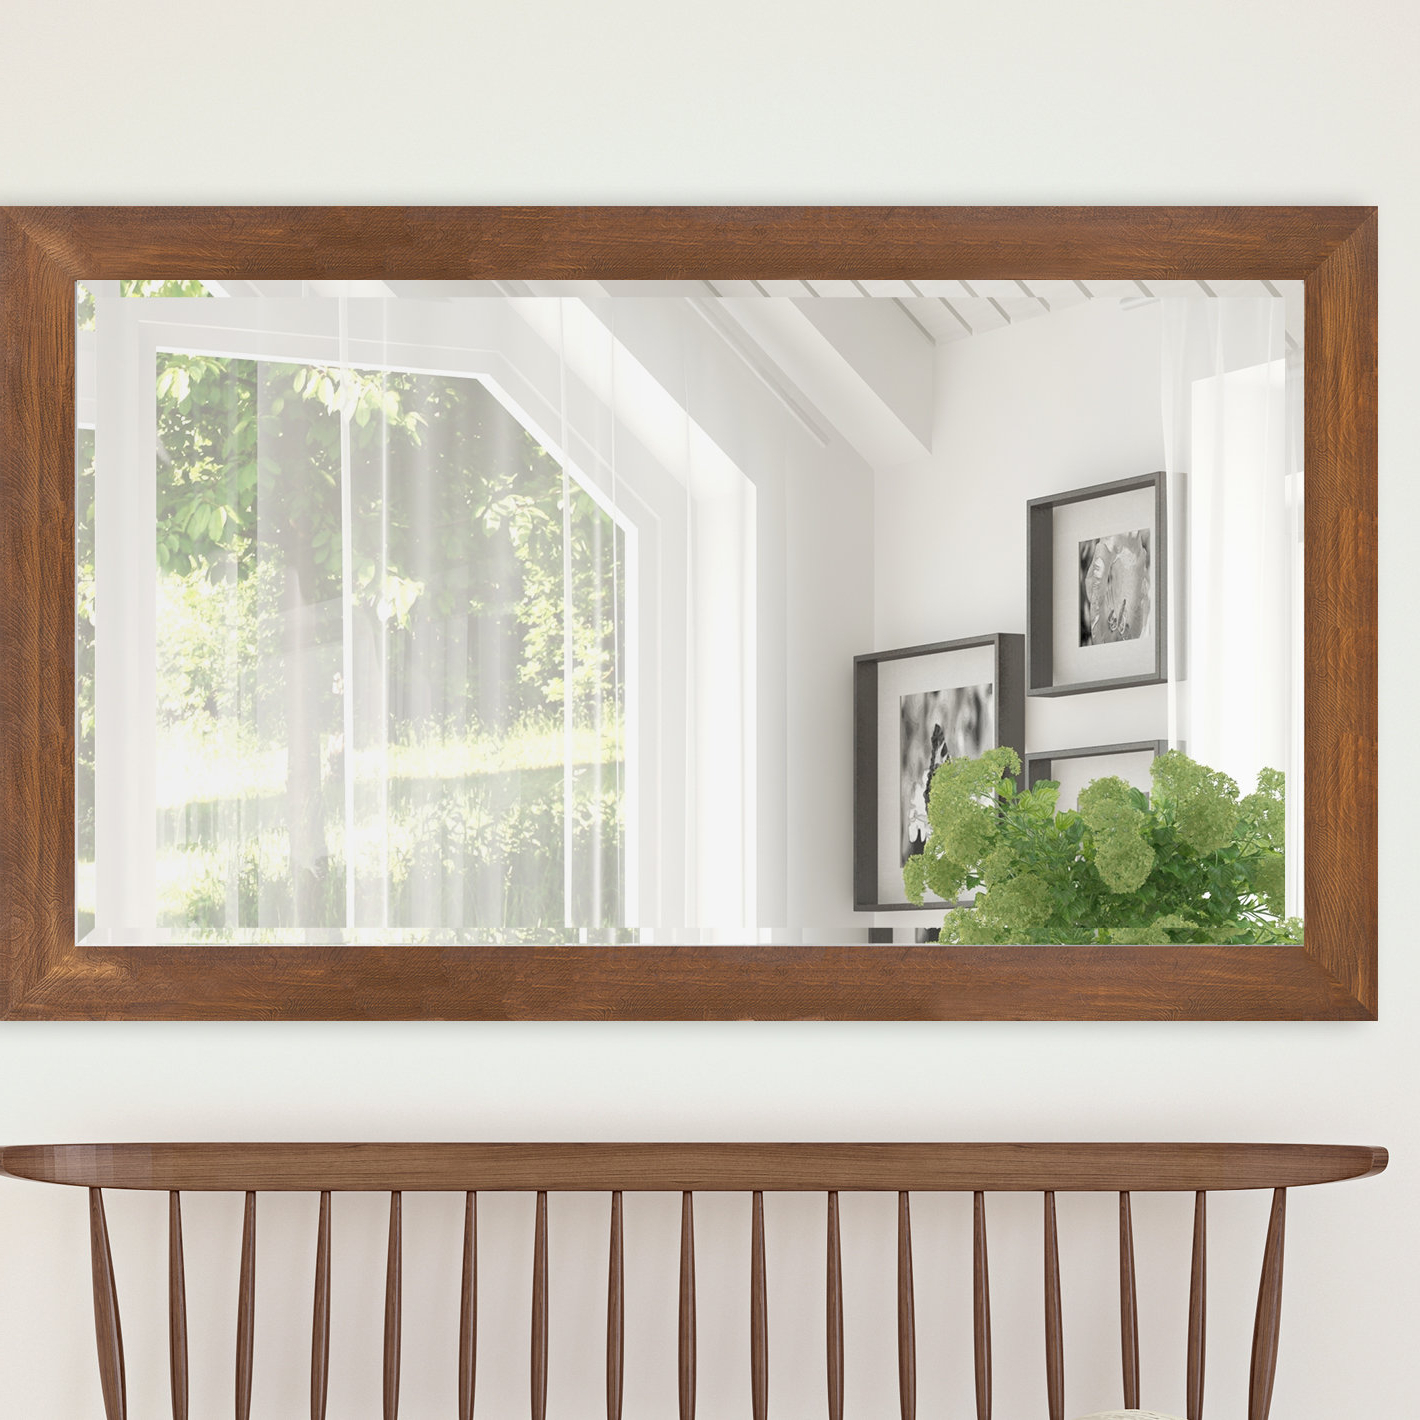 2019 Hilde Traditional Beveled Bathroom Mirrors Pertaining To Horacia Woodgrain Framed Beveled Full Length Mirror (View 20 of 20)